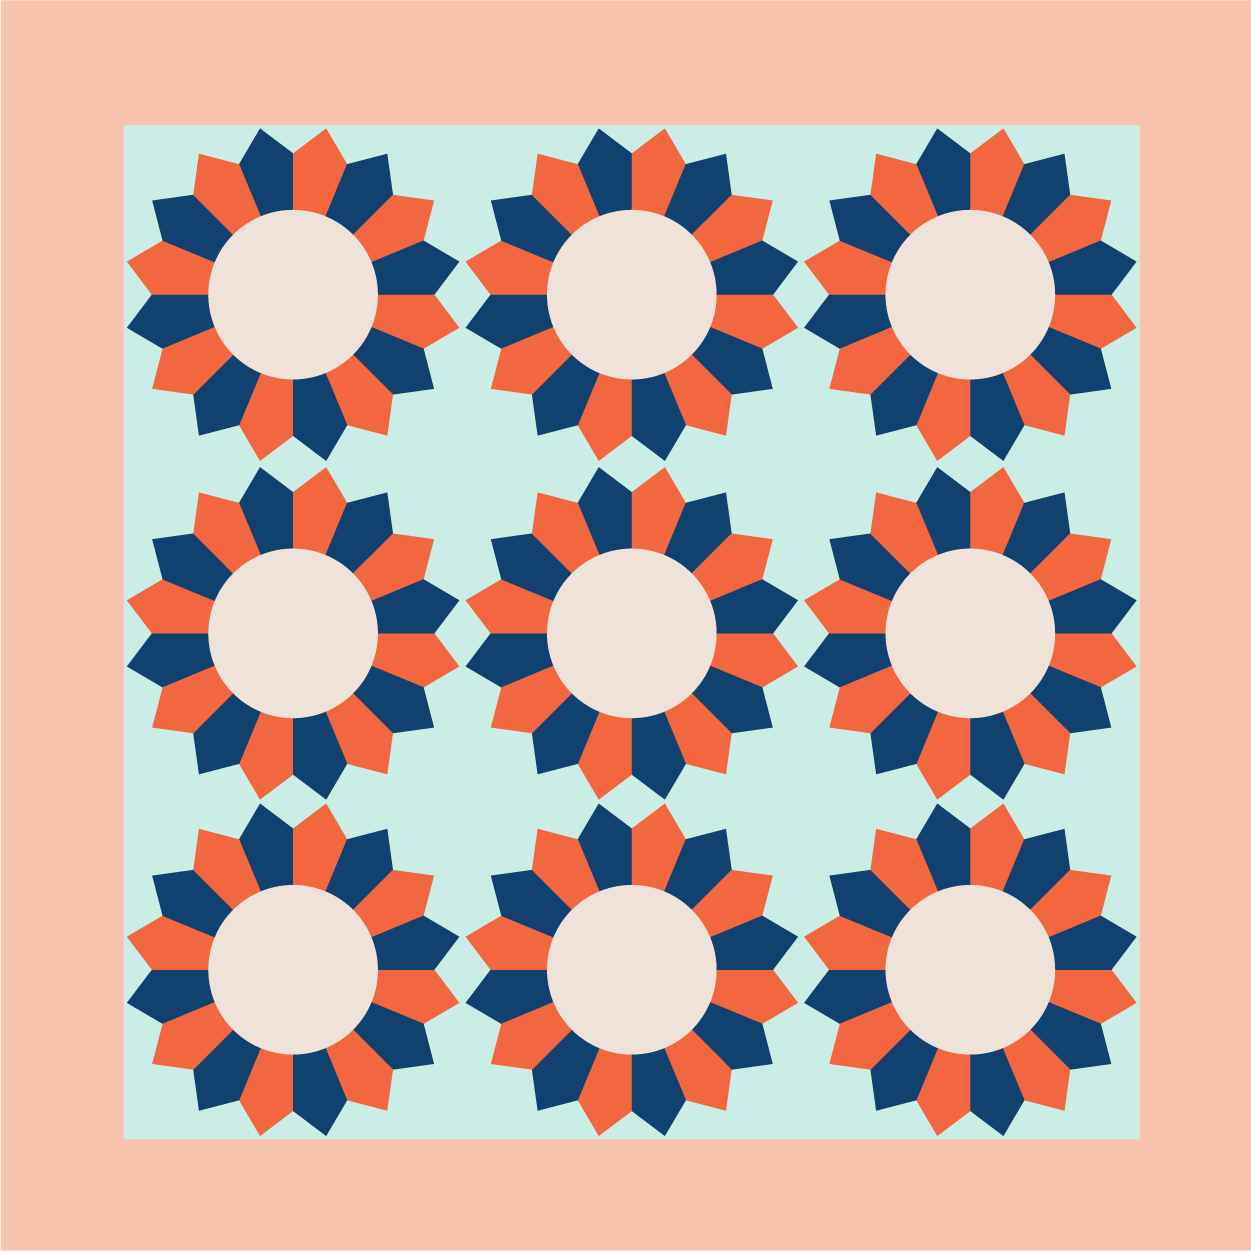 Illustration of a group of Dresden Quilt Blocks